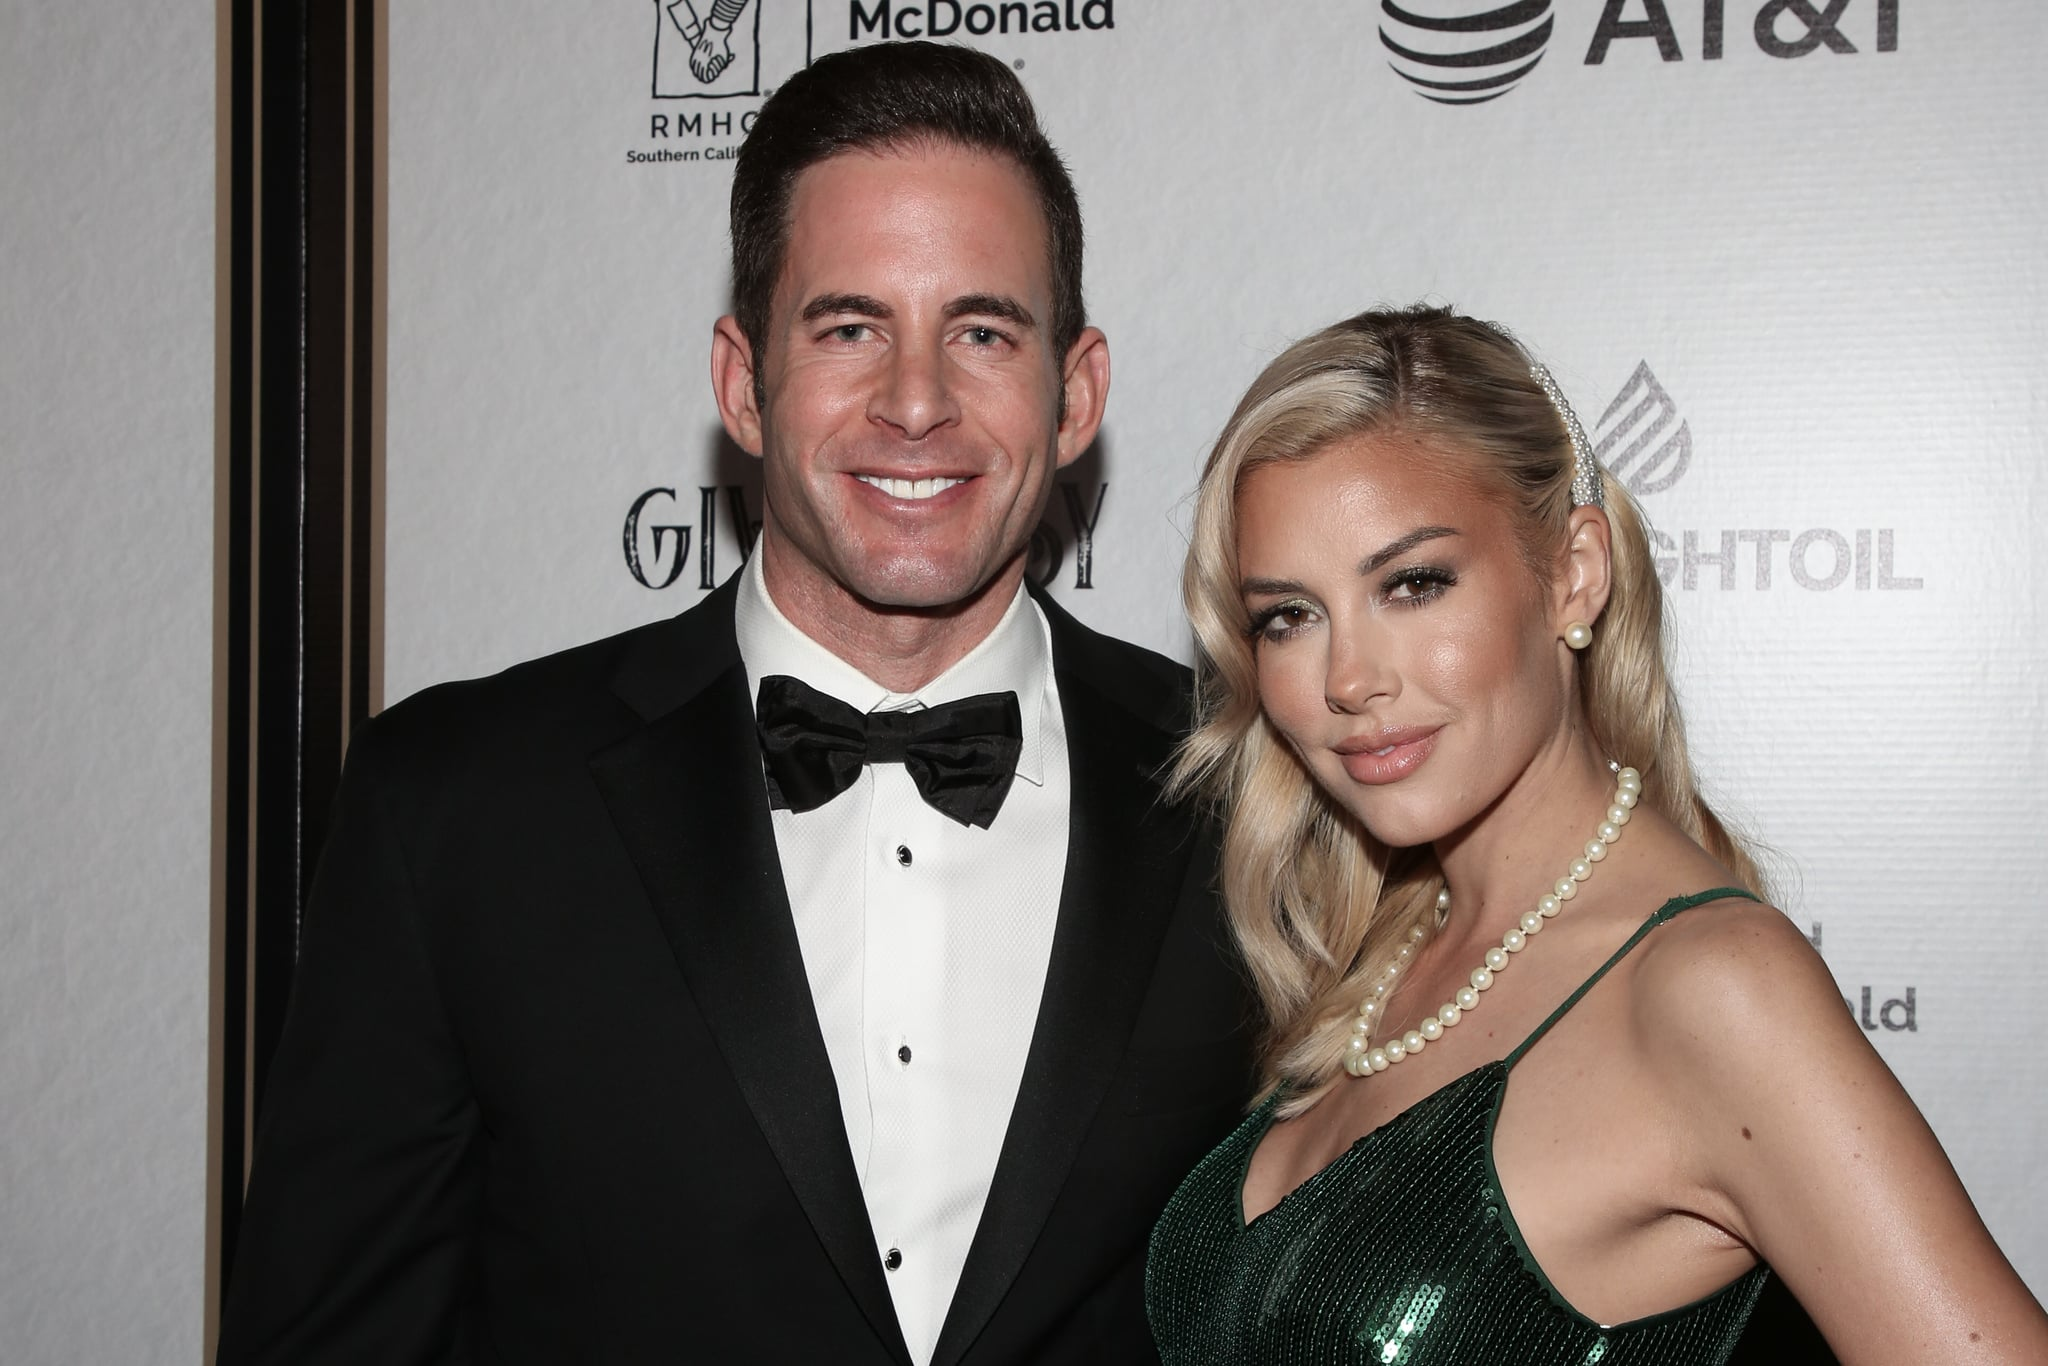 LOS ANGELES, CALIFORNIA - NOVEMBER 07: Reality TV Personalities Tarek El Moussa (L) and Heather Rae Young (R) attend the Give Easy event hosted by Ronald McDonald House Los Angeles at Avalon Hollywood on November 07, 2019 in Los Angeles, California. (Photo by Paul Archuleta/Getty Images)